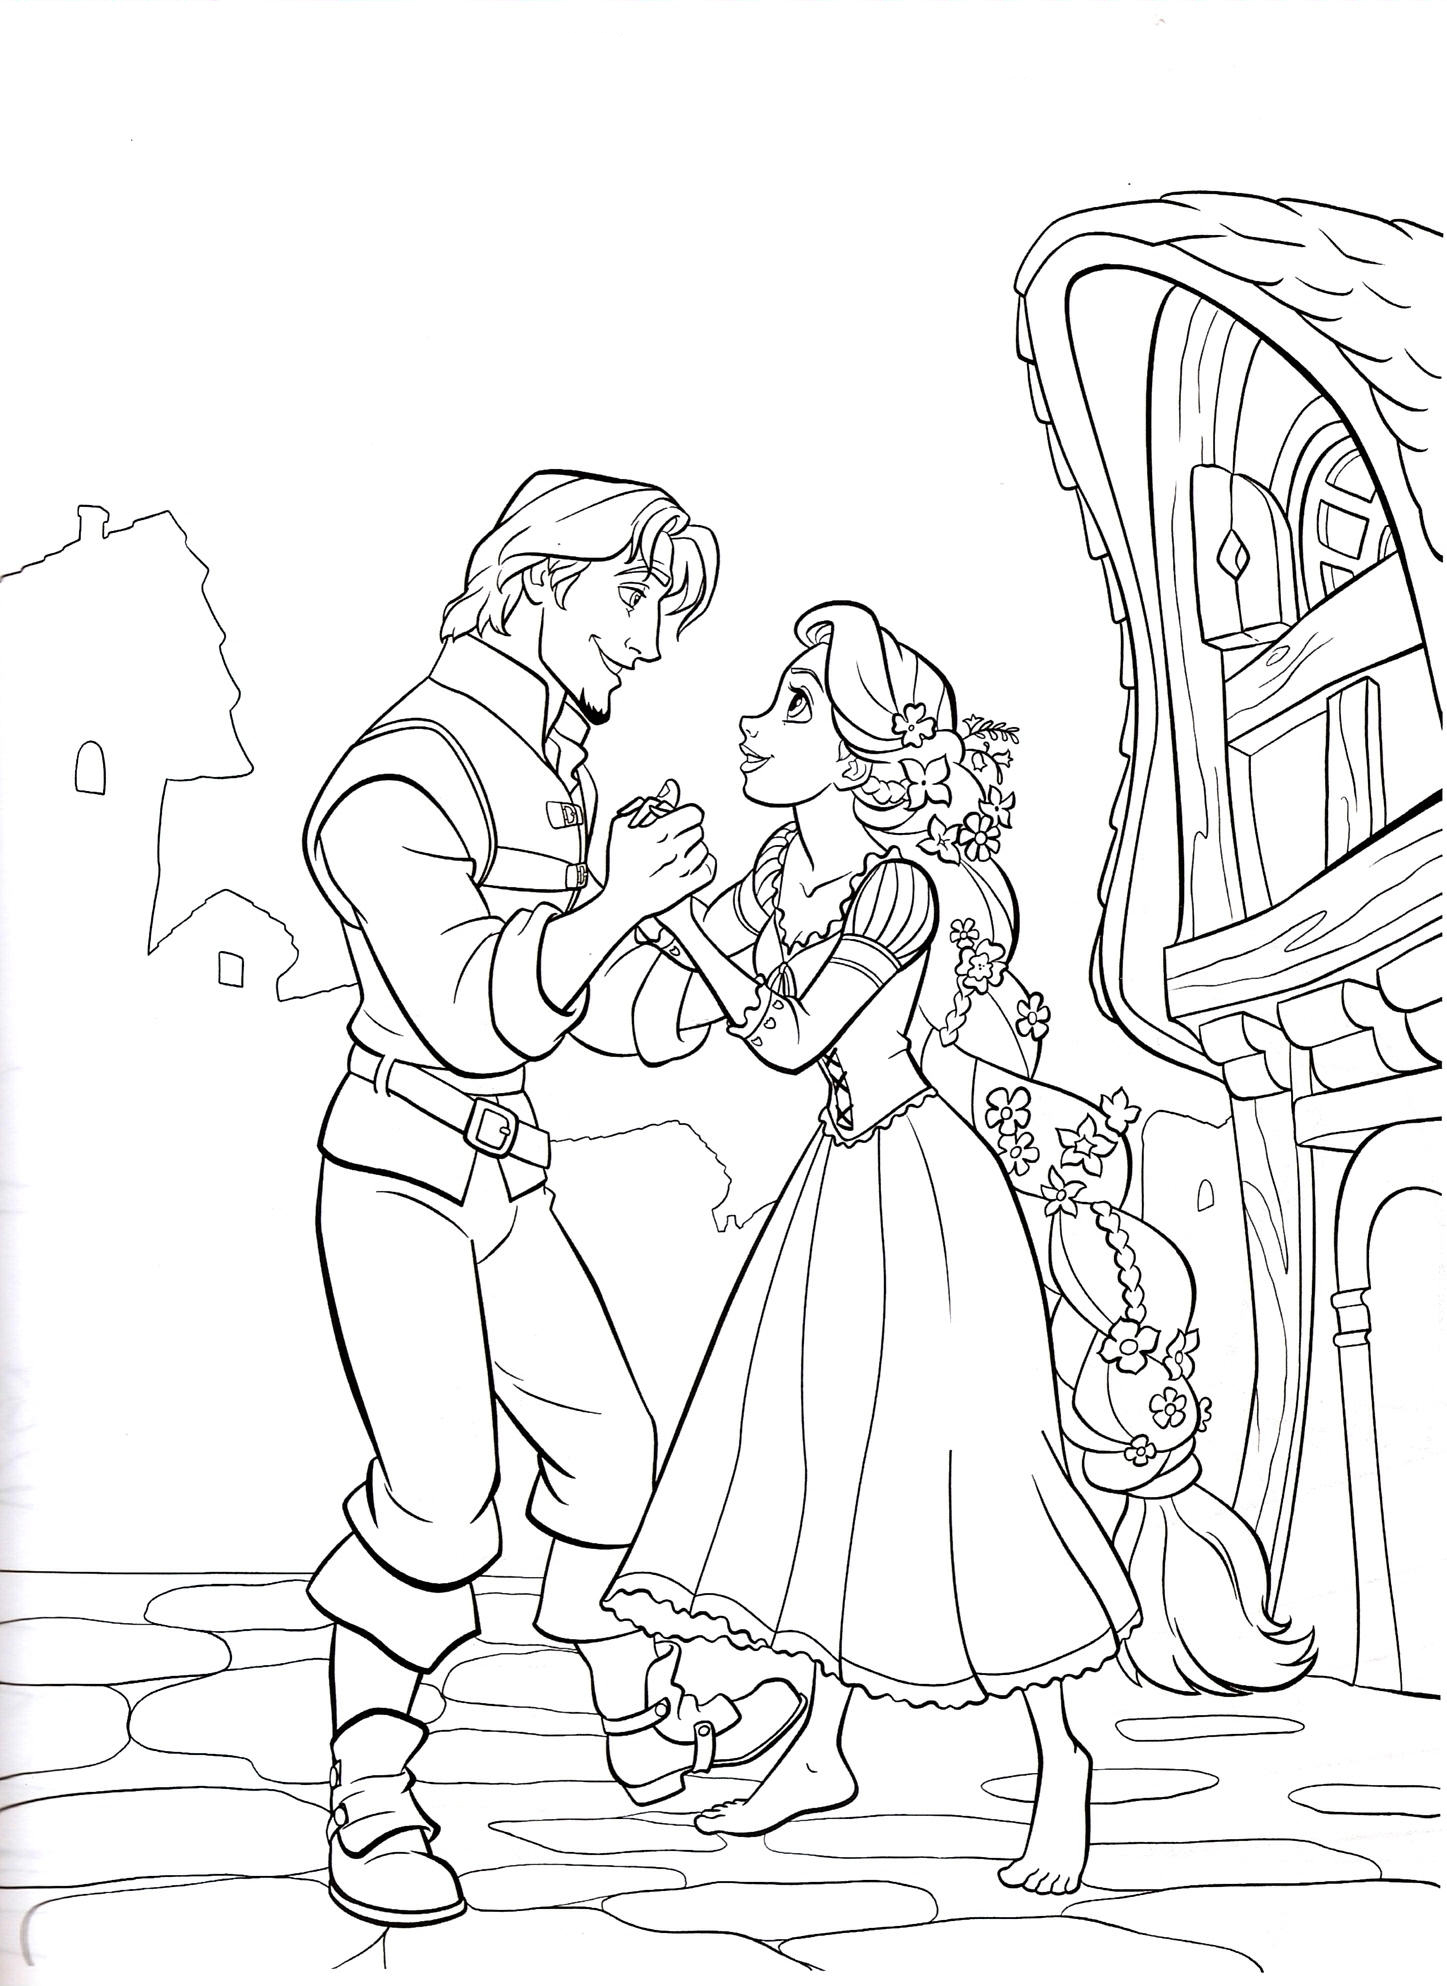 Rapunzel Coloring Pages Best Coloring Pages For Kids Coloring Pages Tangled